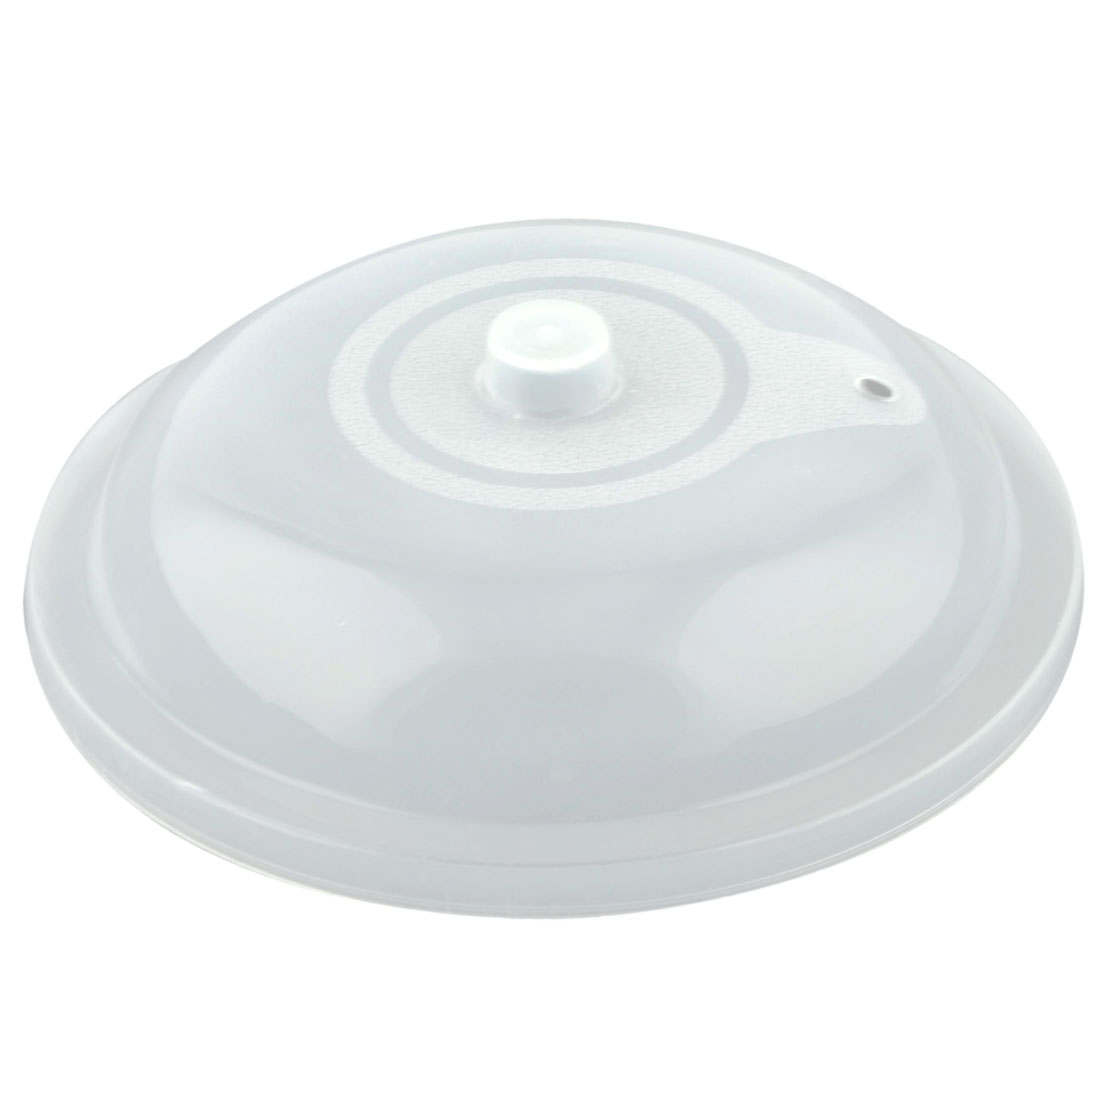 Household Plastic Food Storage Plate Bowl Pan Lid Cover Container Holder Clear White